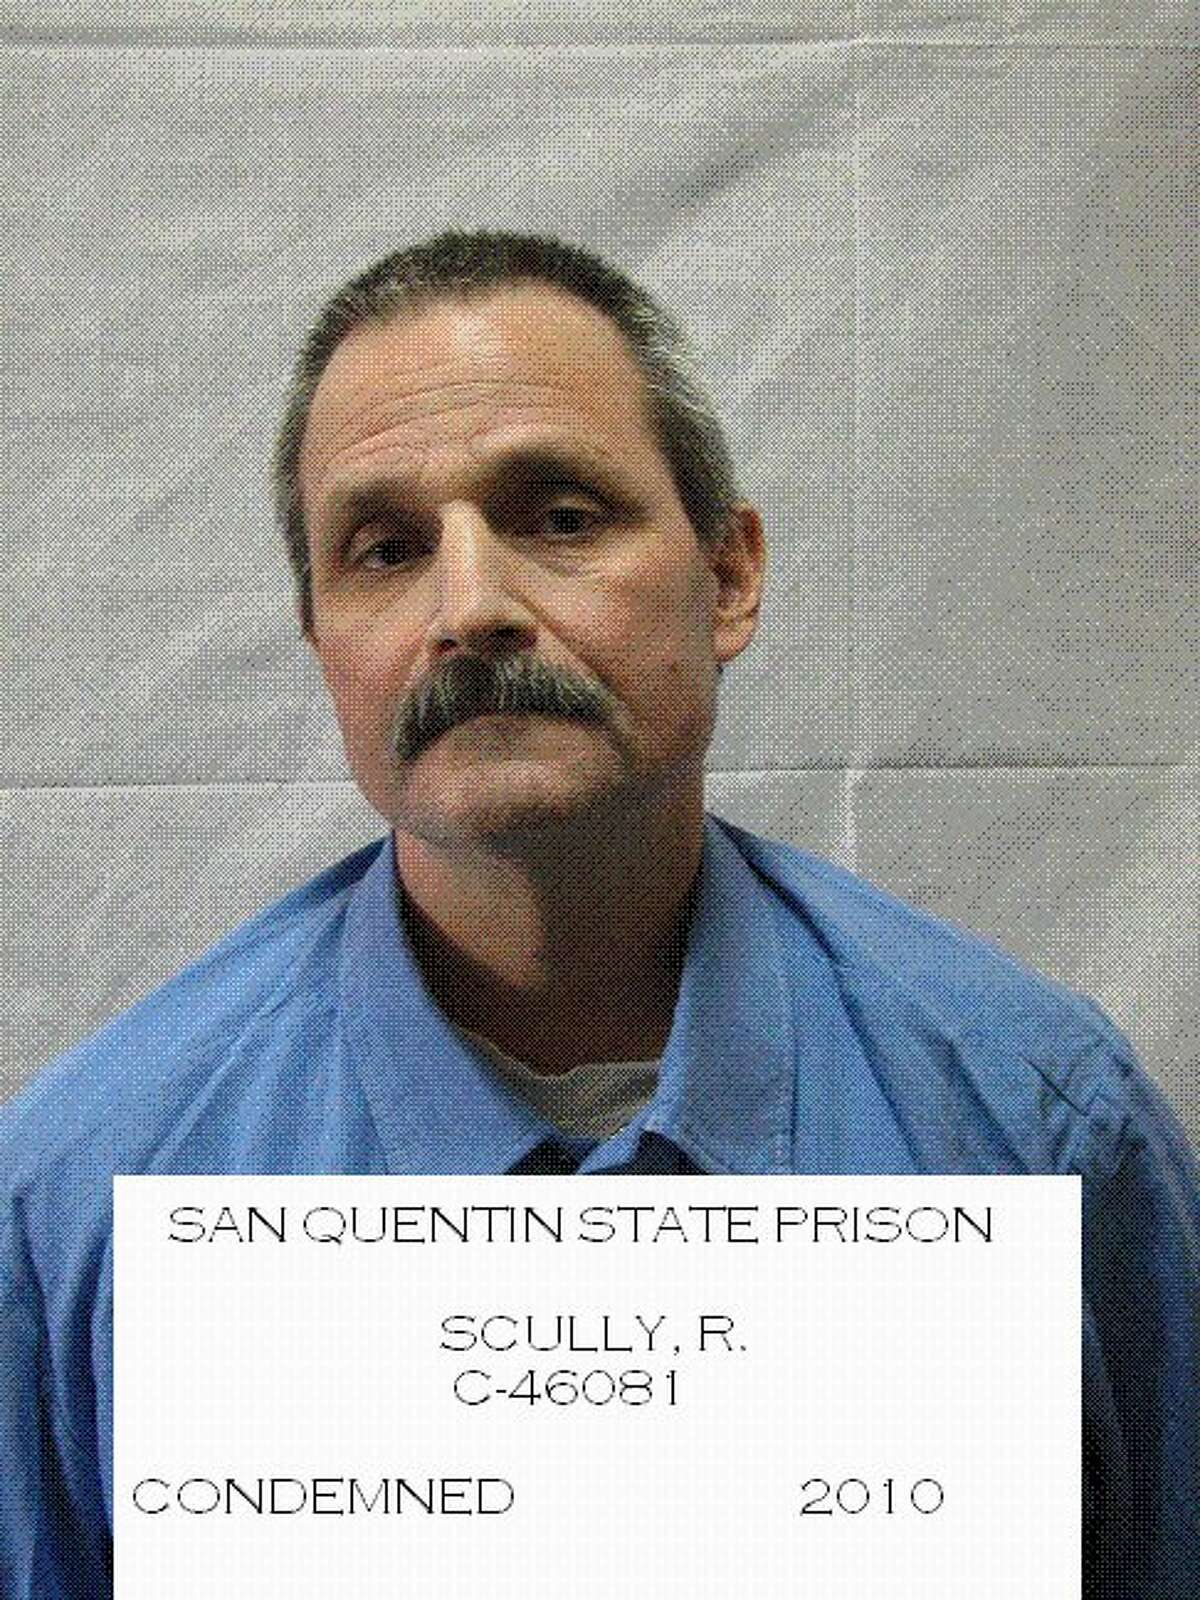 Robert Scully is on death row for killing Sonoma County sherrif's Deputy Frank Trejo in March 1995.